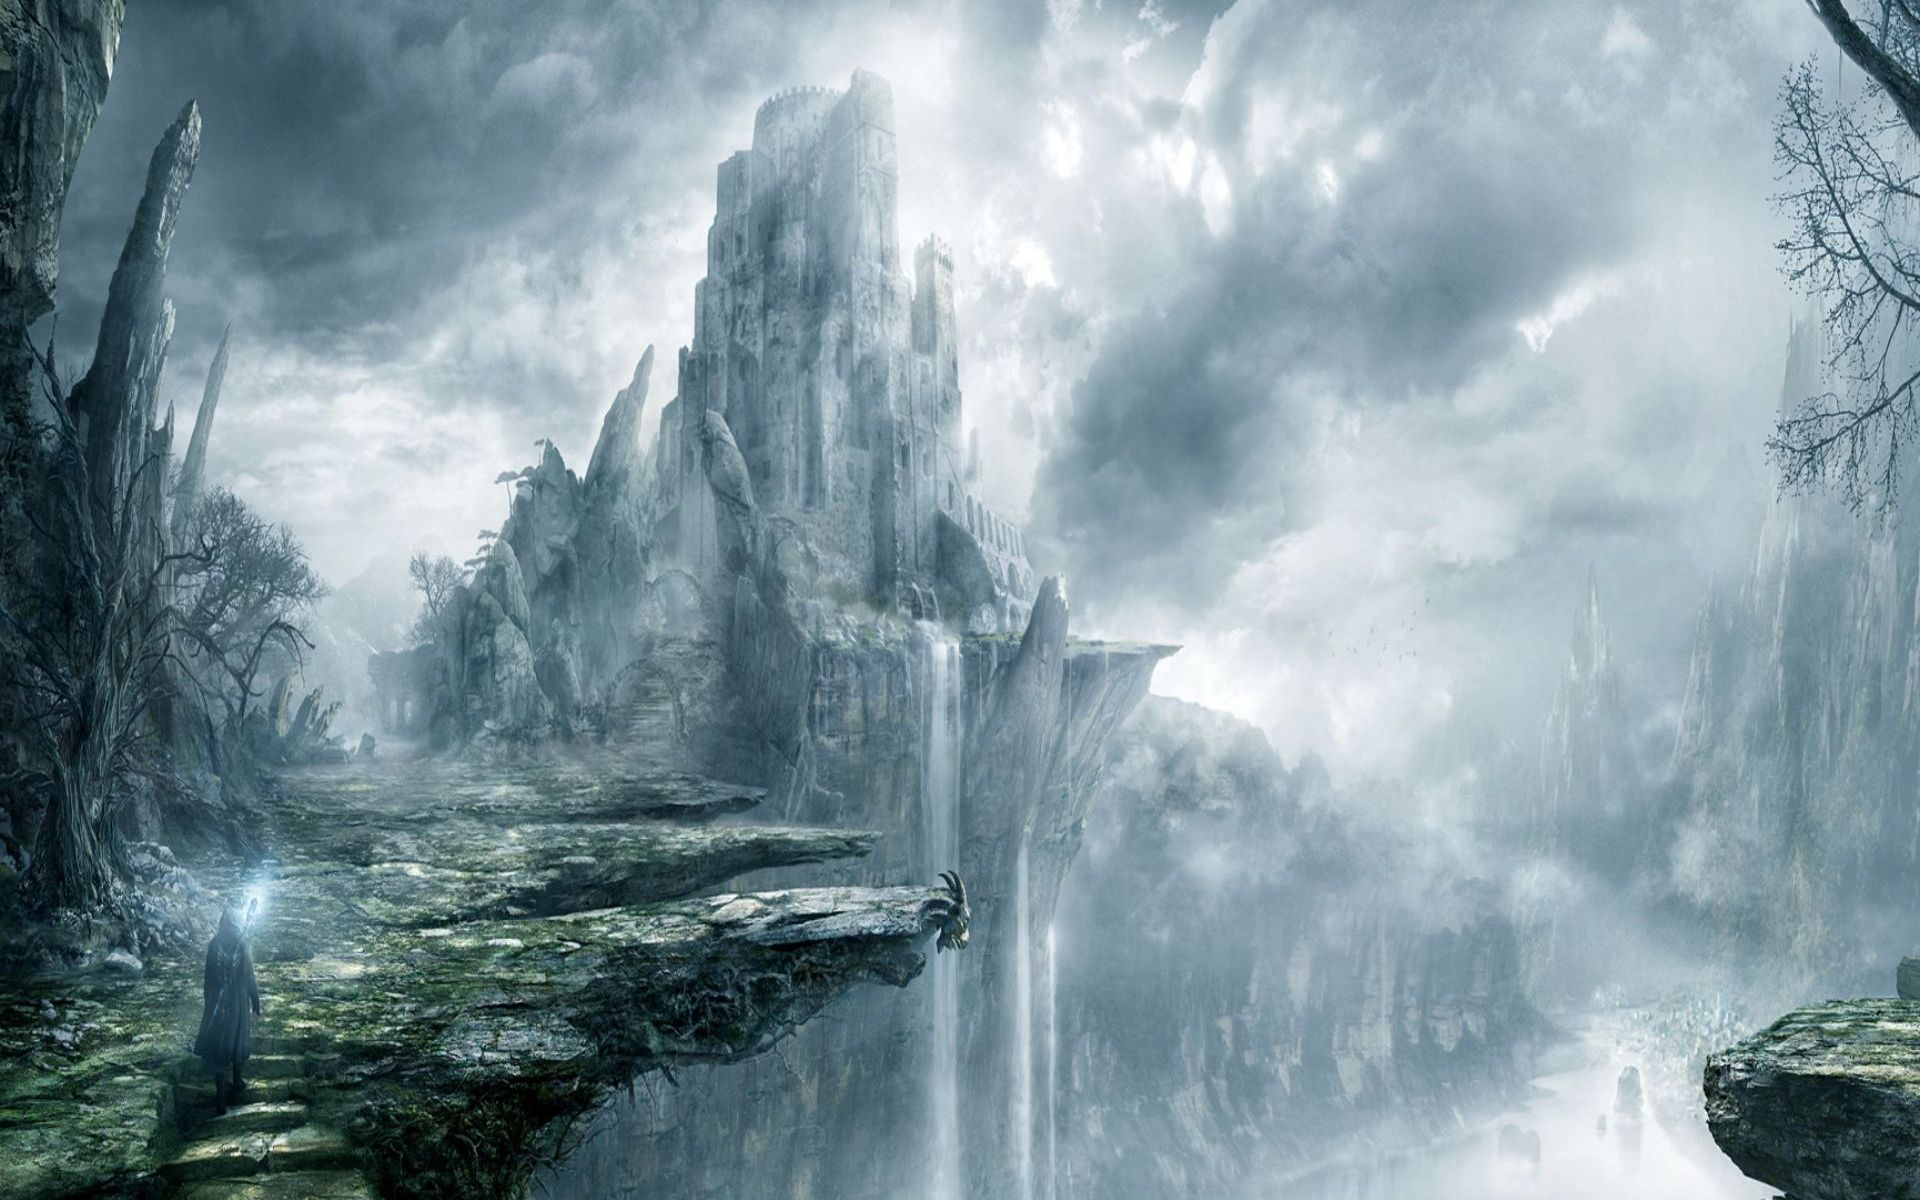 Epic Fantasy Wallpapers 1080p   Amazing Wallpapers   Pinterest     Epic Fantasy Wallpapers 1080p